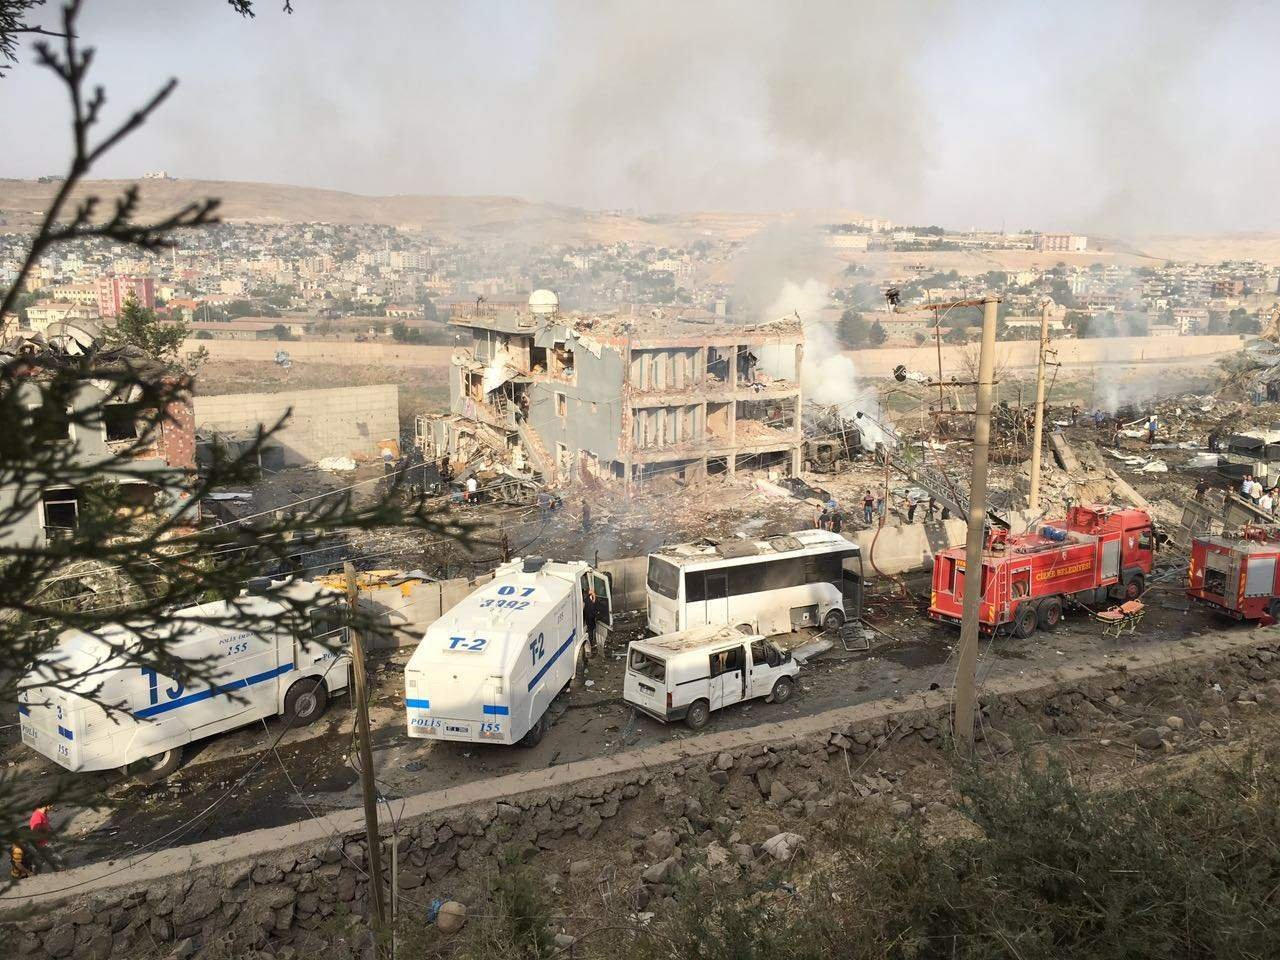 Turkish police and firefighters are parked near a damaged police headquarters in Cizre, southeastern Turkey